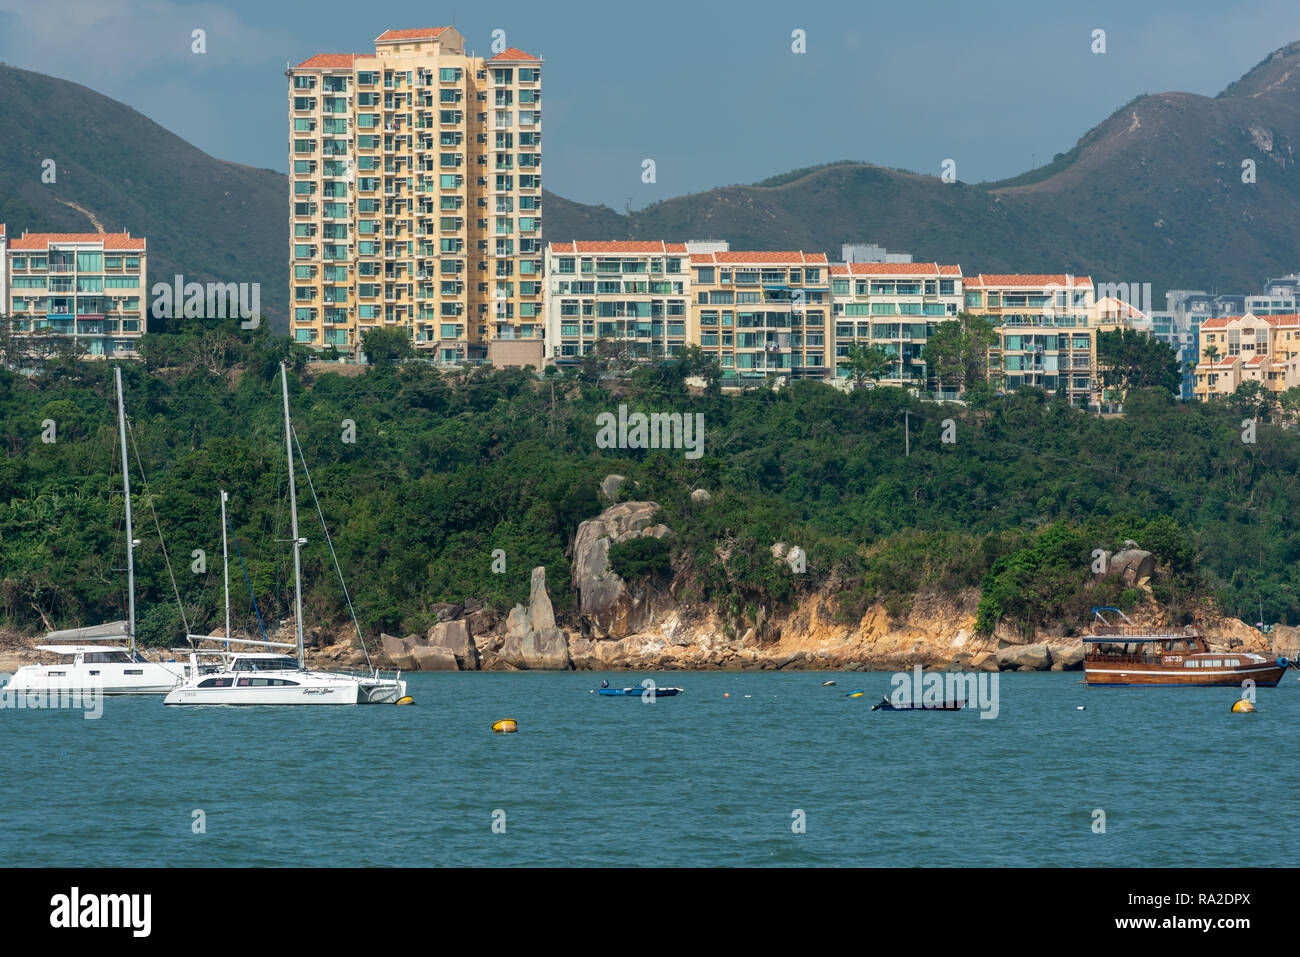 The luxury apartments of Vista Court and Avenue look out over Tim Shue Wan in Discovery Bay, Lantau Island. - Stock Image